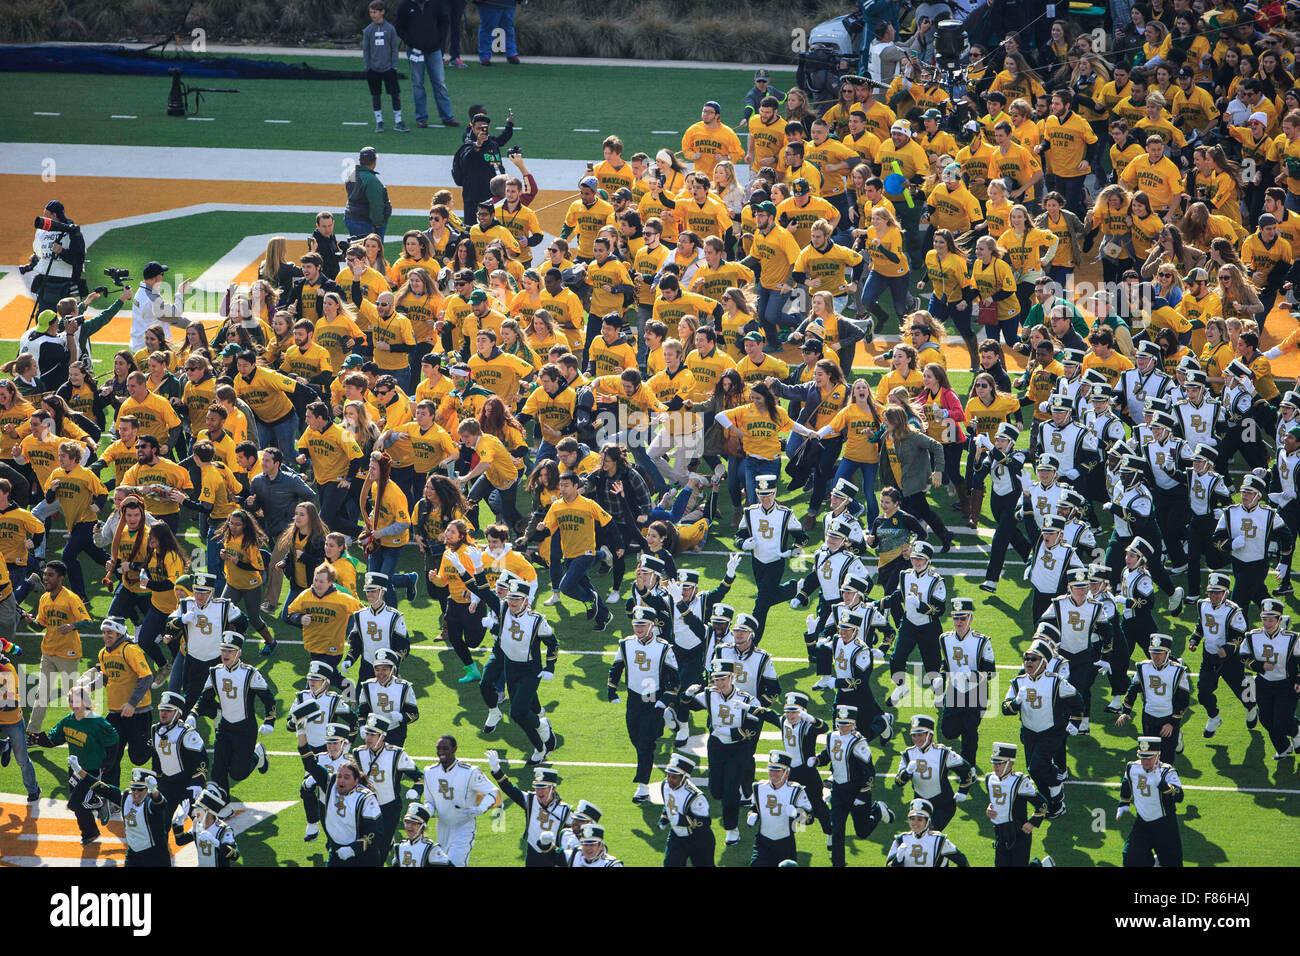 Waco, Texas, USA. 5th Dec, 2015. Baylor Bears line runs onto the field during the NCAA football game between Texas vs Baylor at McLane Stadium in Waco, Texas. © csm/Alamy Live News Stock Photo